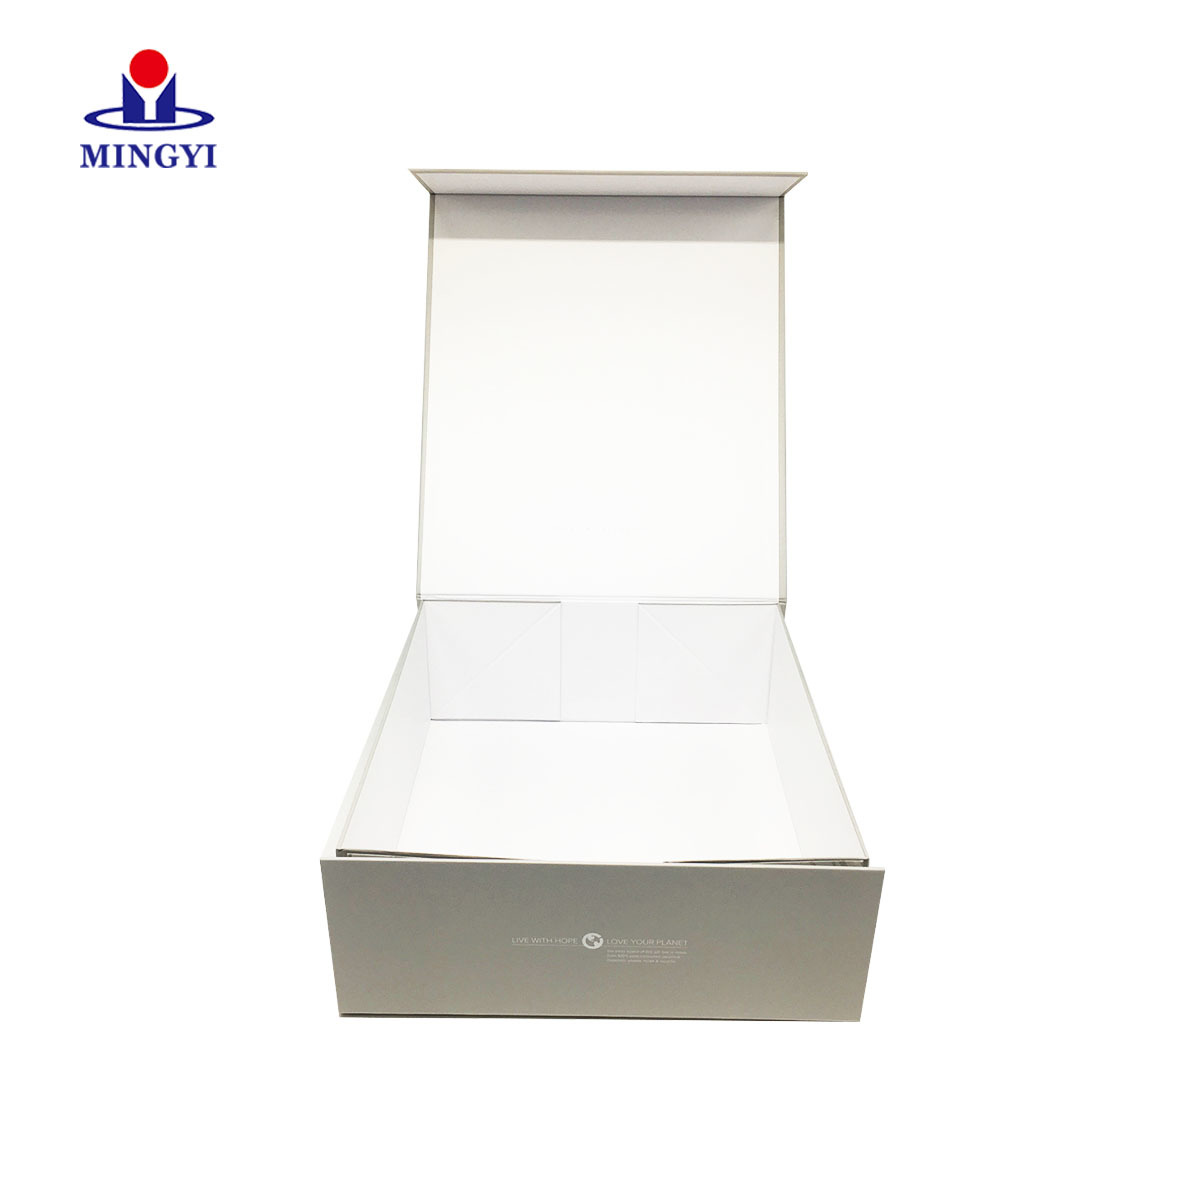 clothing daily electronics hard gift boxes watch trophy Mingyi Printing Brand